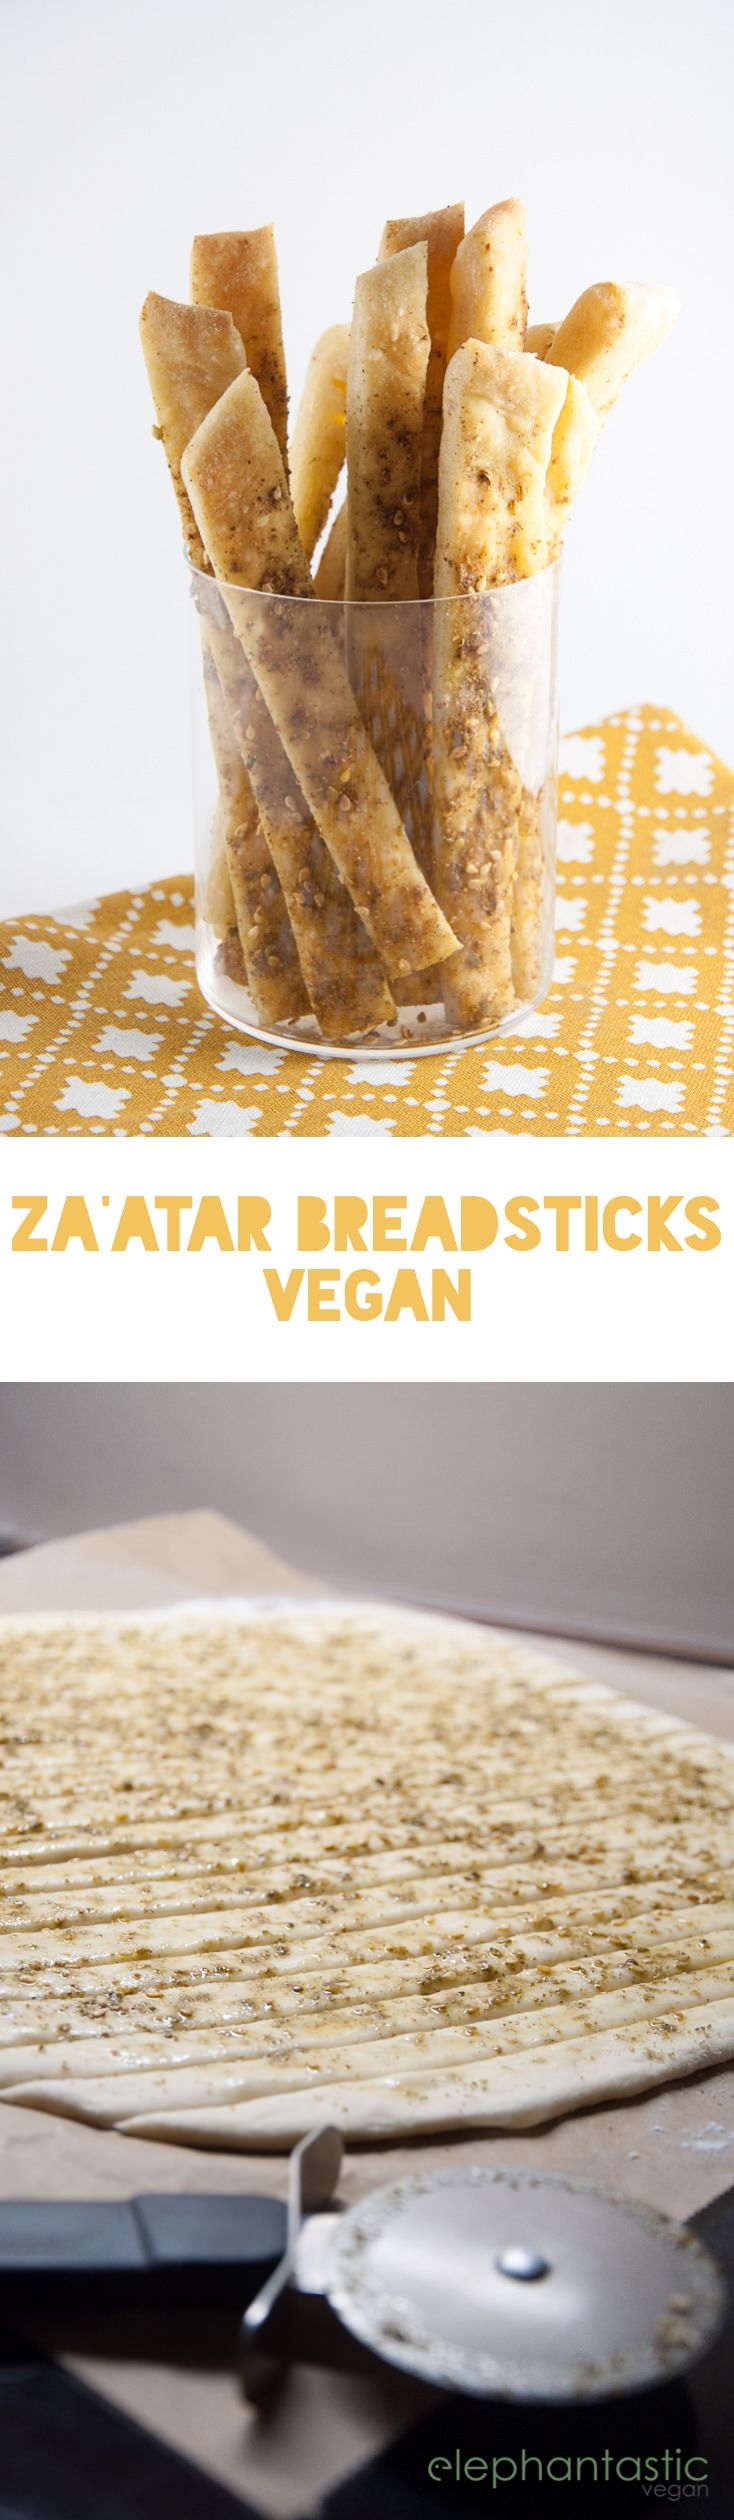 Vegan Za'atar Breadsticks | ElephantasticVegan.com